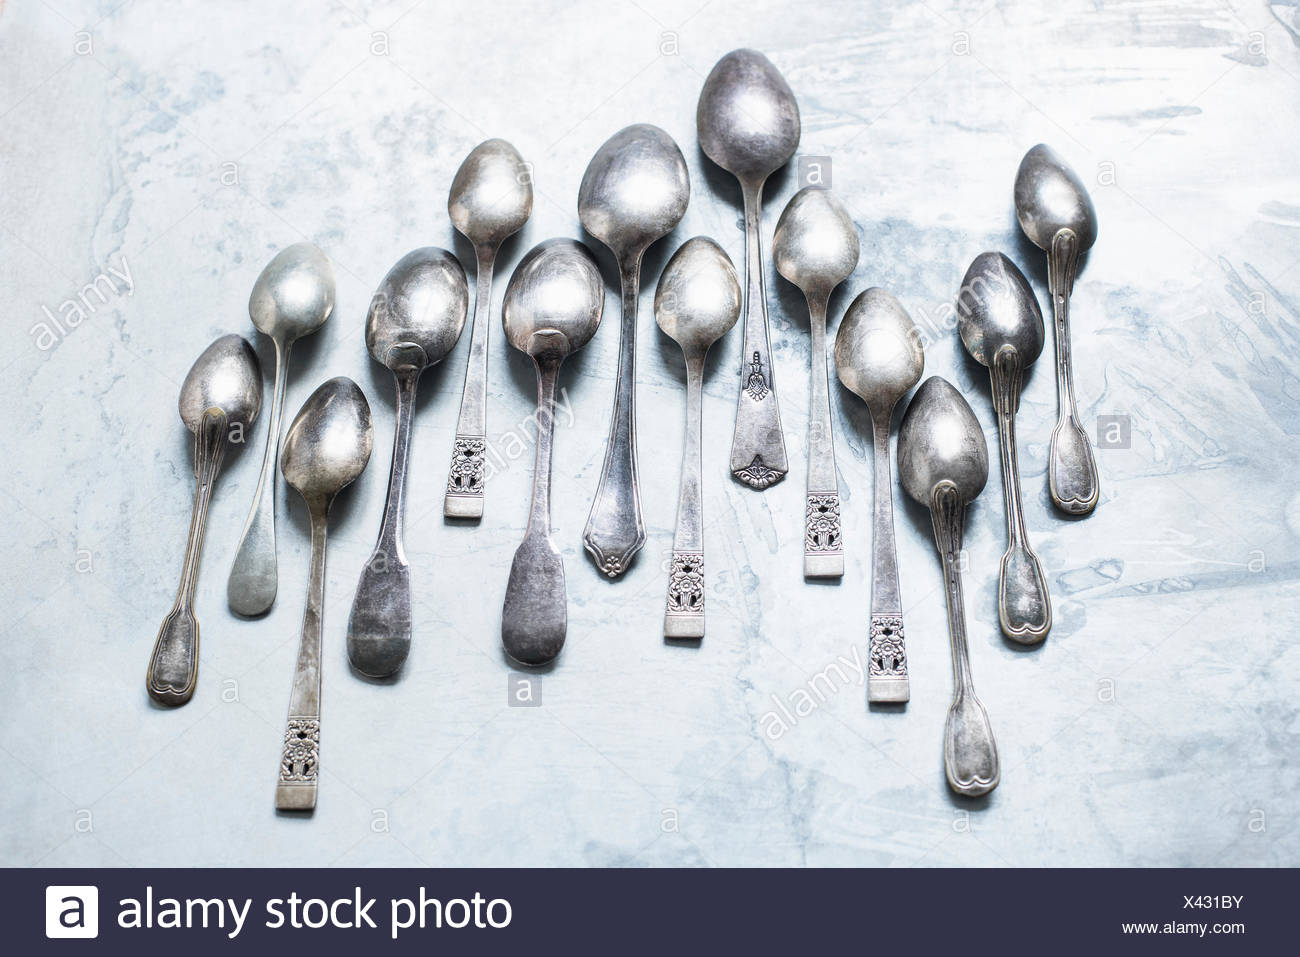 Studio shot, overhead view of teaspoons in staggered row - Stock Image